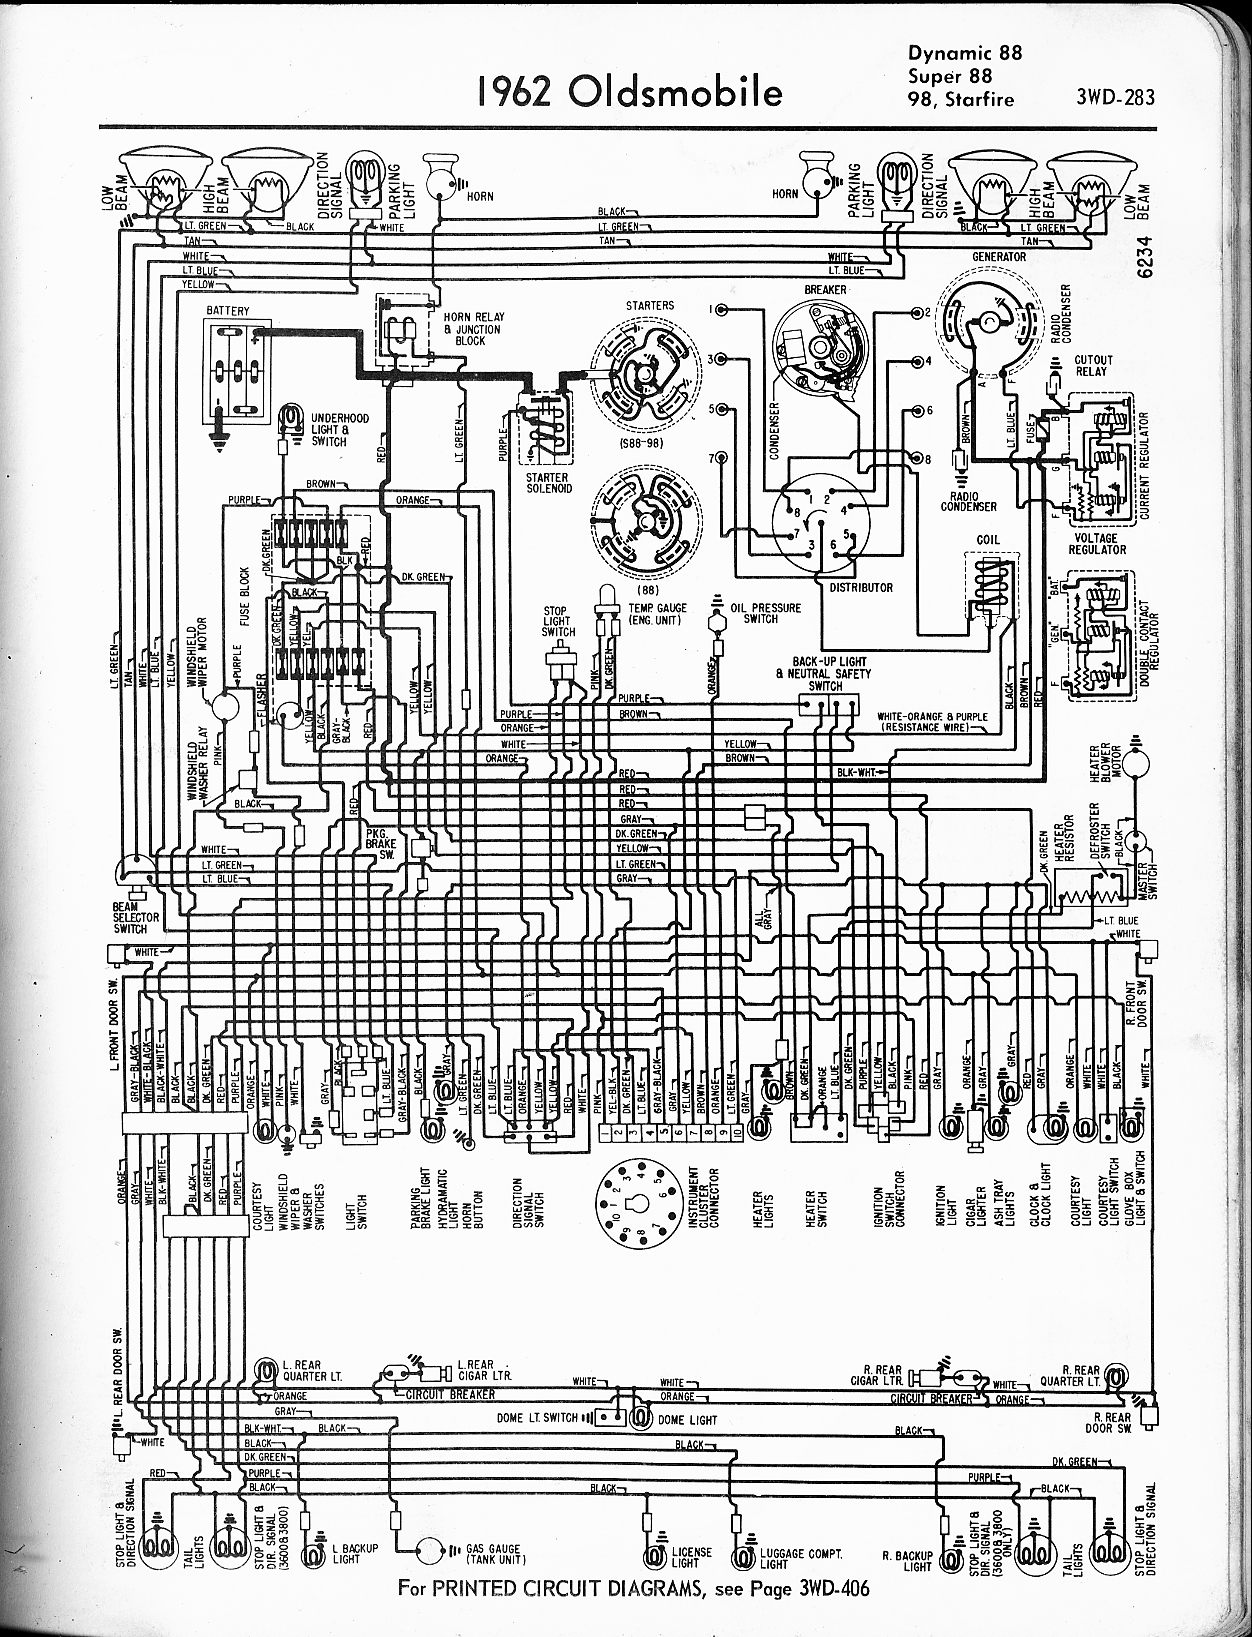 oldsmobile wiring diagrams the old car manual project rh oldcarmanualproject com Power Window Wiring Diagram Power Window Relay Wiring Diagram